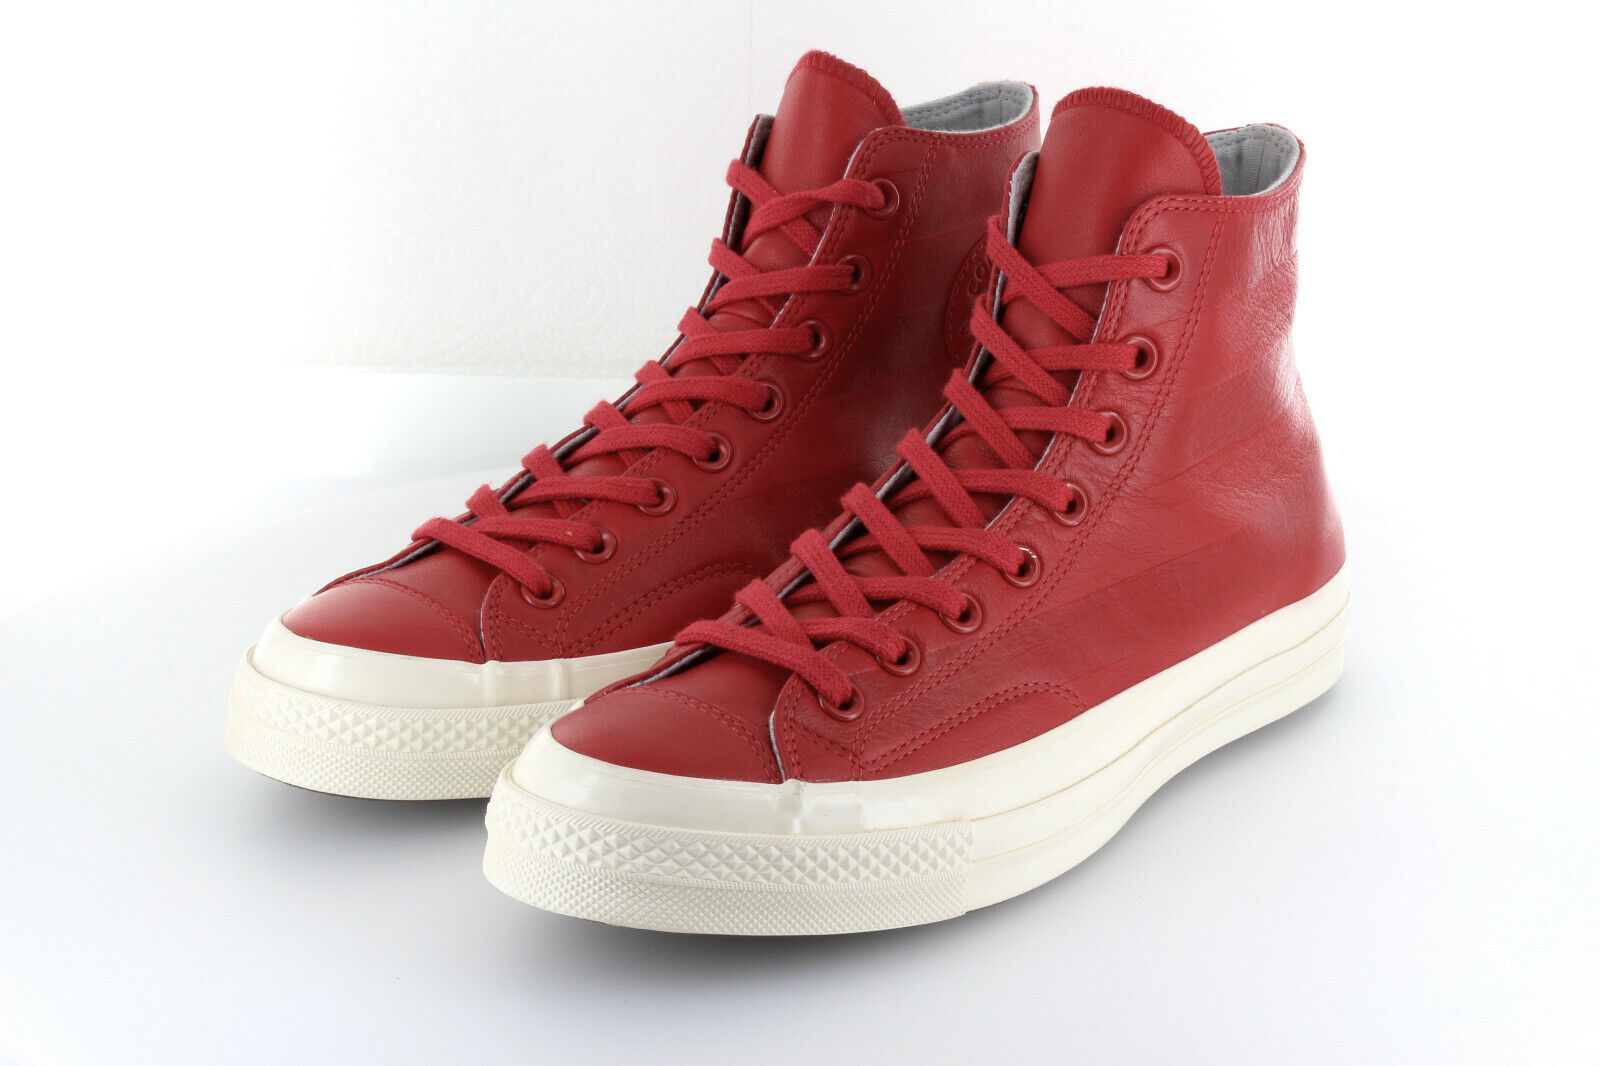 Converse Chuck Taylor AS Hi 70s Red Stripe Limited Edition  42,5   43,5 US9